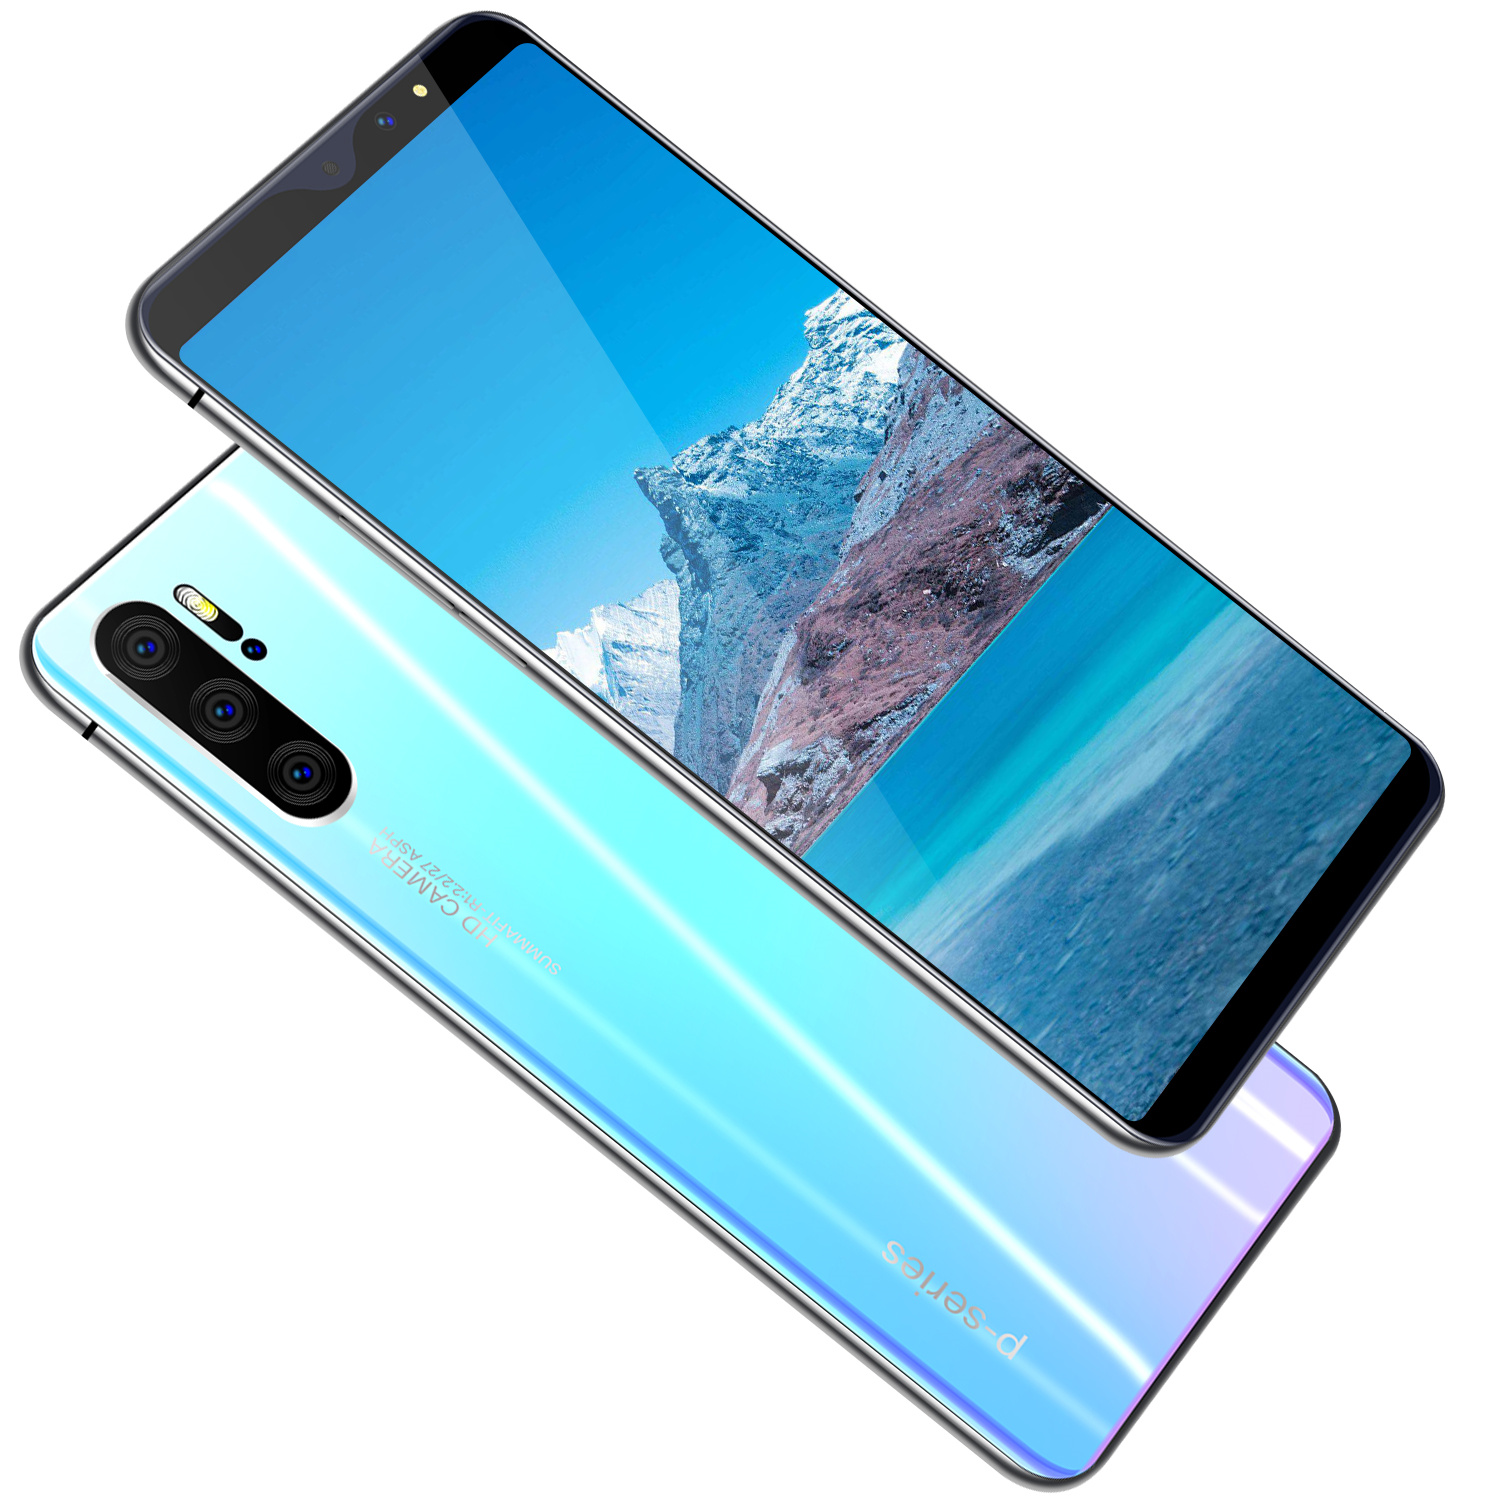 wholesale cheap smart phone p31pro android mobile phone Quad core Gradient body Factory Outlet oem low price china mobile phon